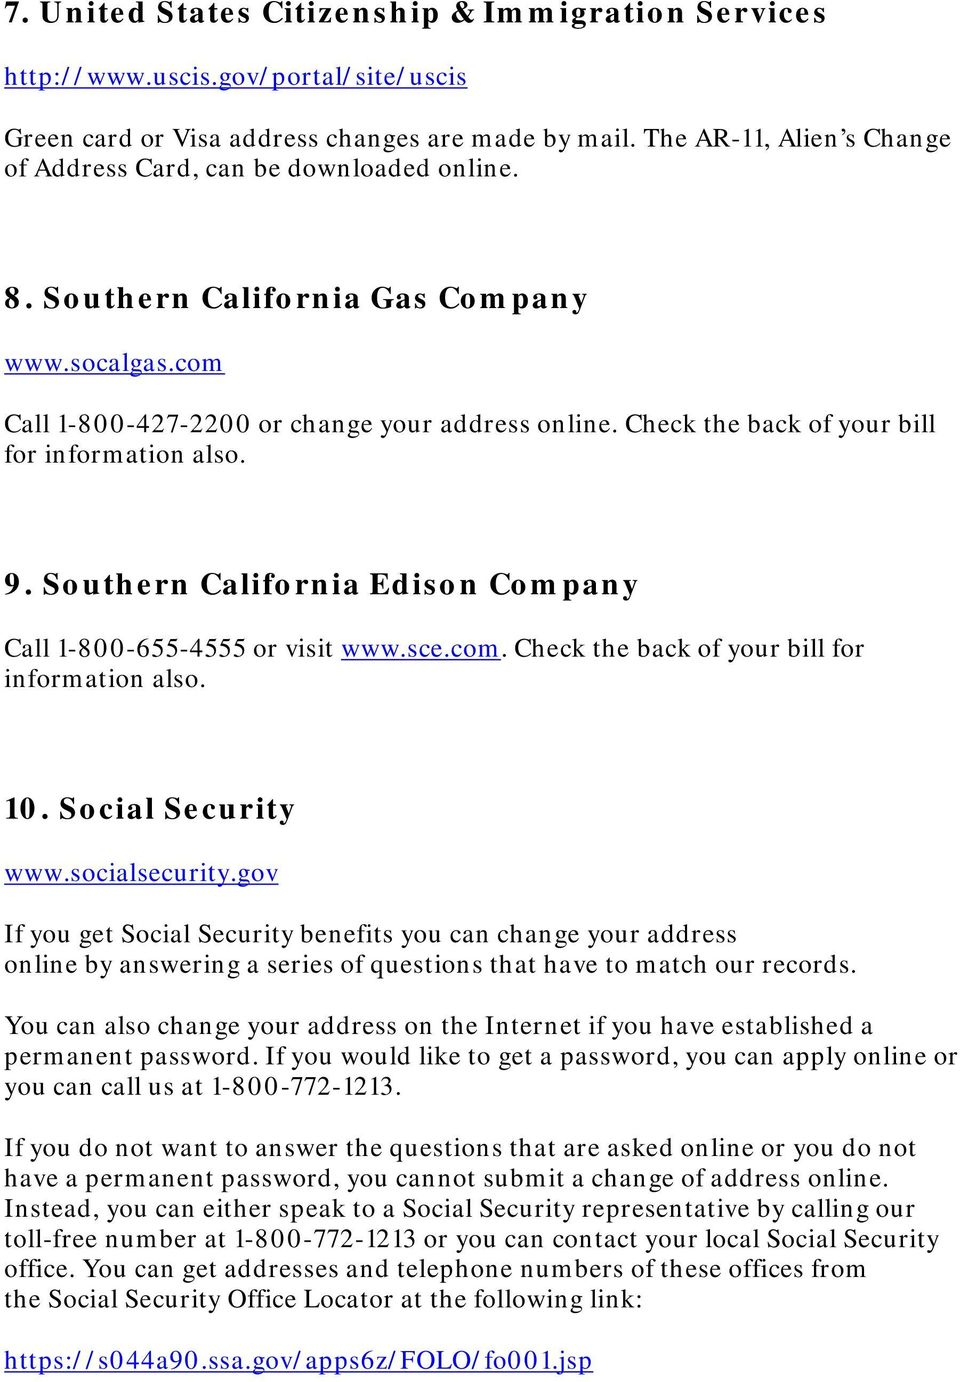 Check the back of your bill for information also. 9. Southern California Edison Company Call 1-800-655-4555 or visit www.sce.com. Check the back of your bill for information also. 10.